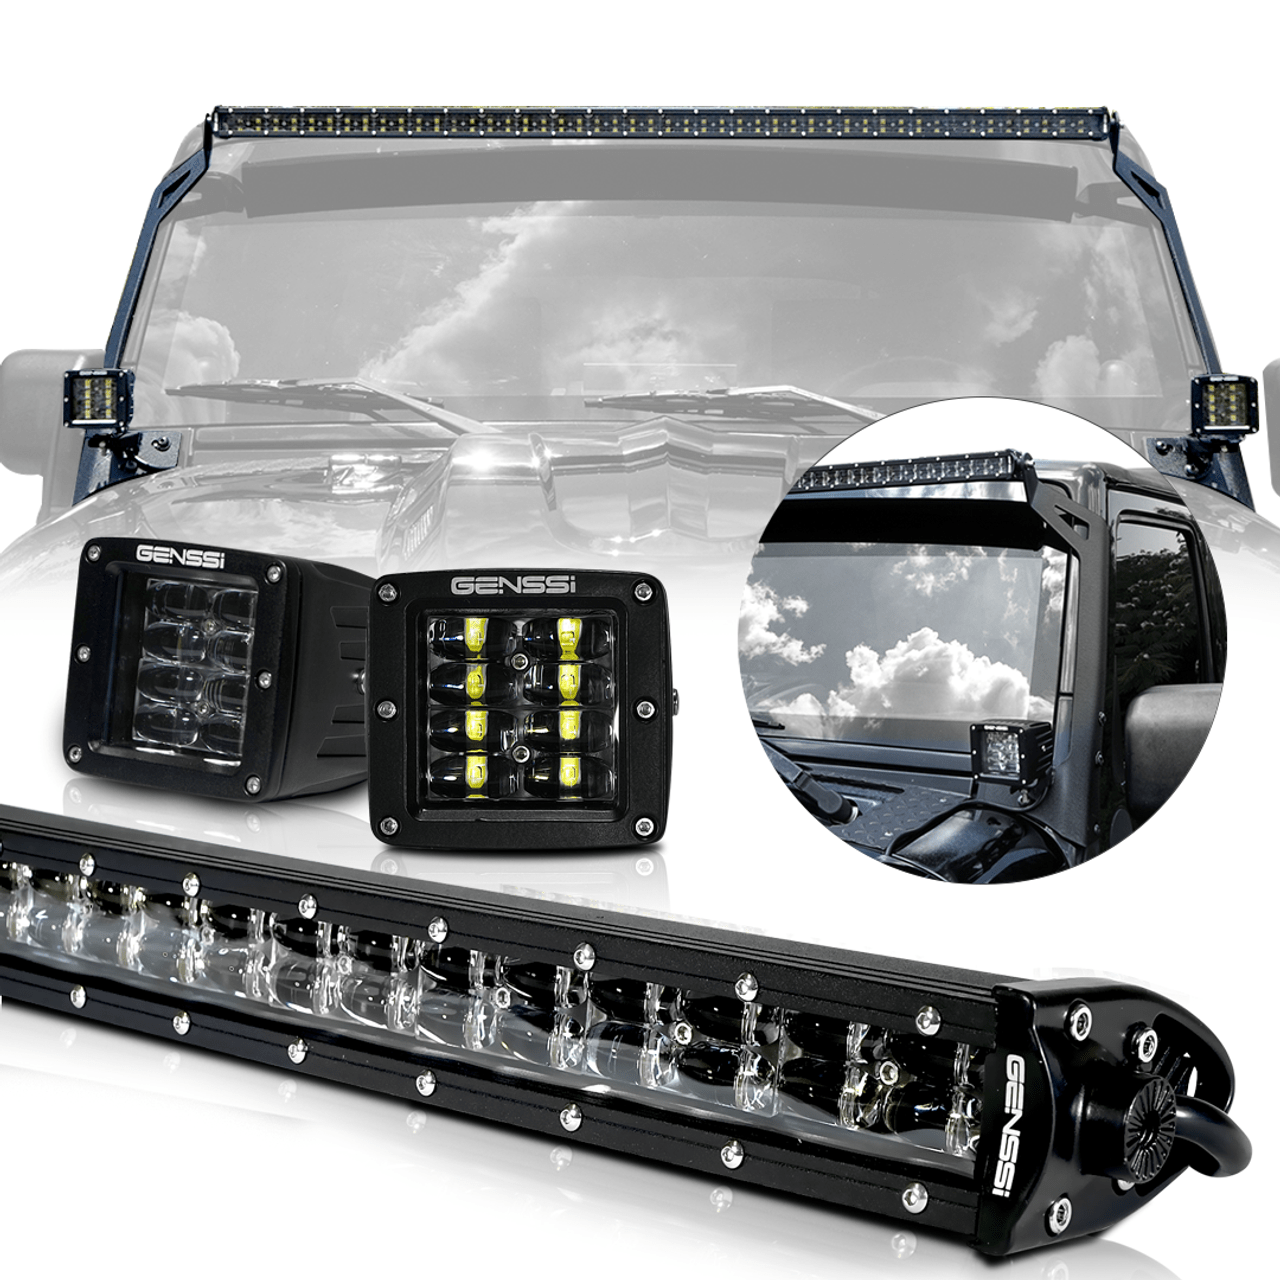 led light bar combo kit with aux lights bracket wiring harness kit for wrangler jk [ 1080 x 1080 Pixel ]